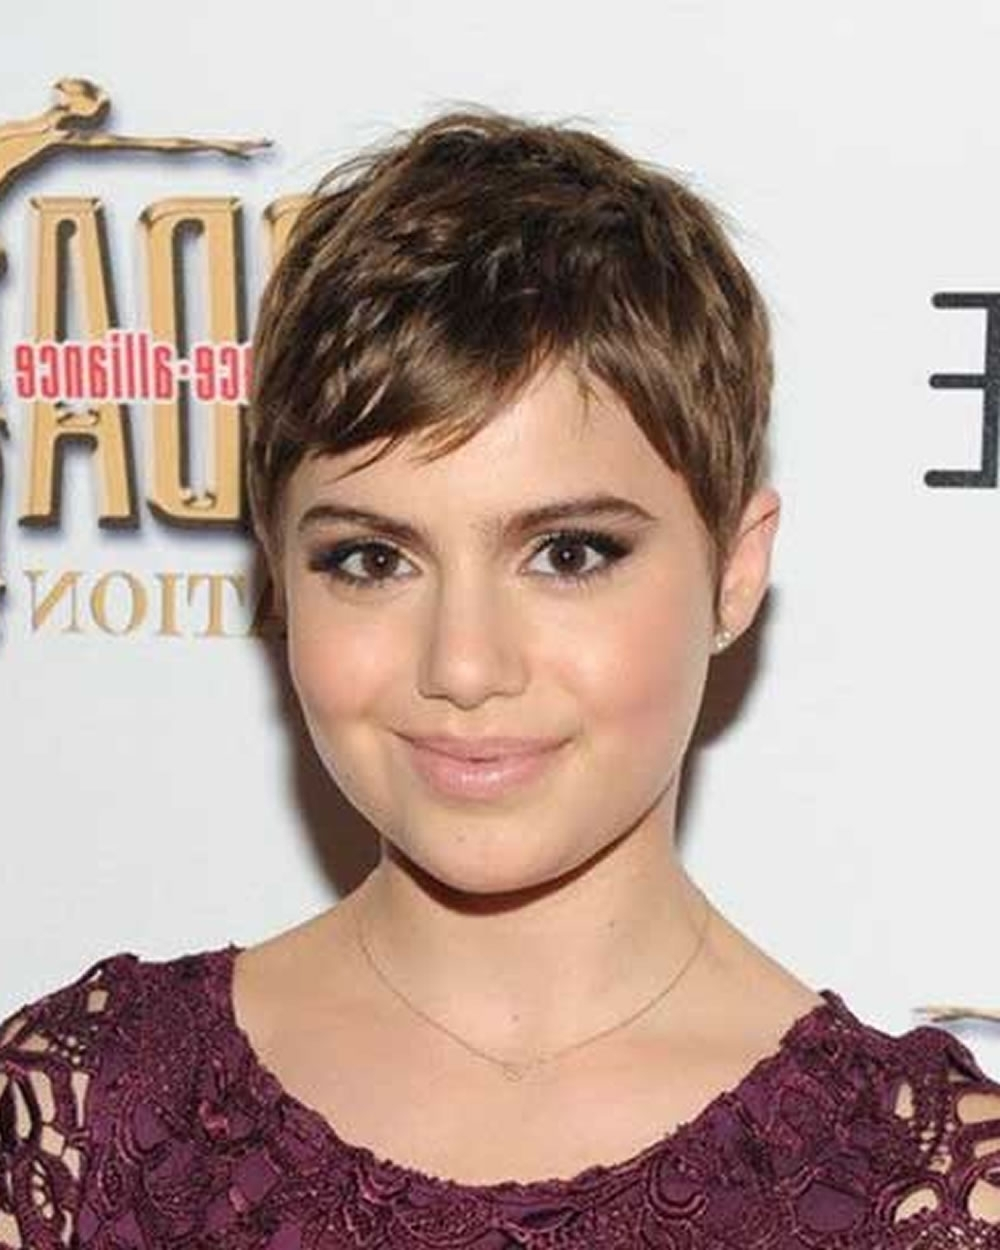 31 Chic Short Haircut Ideas 2018 & Pixie & Bob Hair Inspiration With Regard To Current Kids Pixie Hairstyles (View 11 of 15)